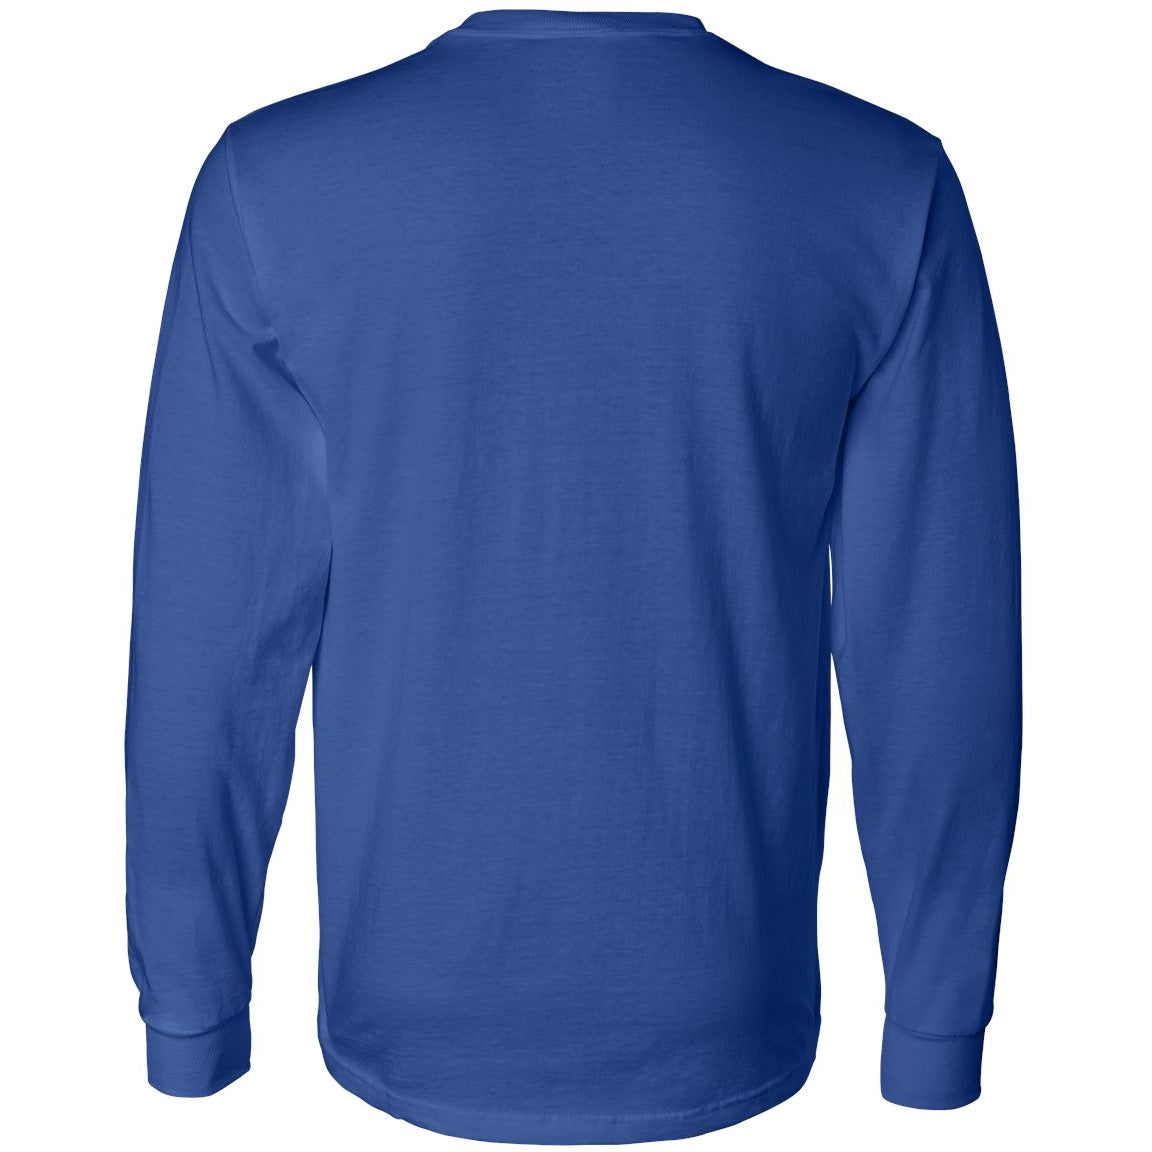 Fruit of the loom long sleeve cotton t shirt colors for Fruit of the loom custom t shirts